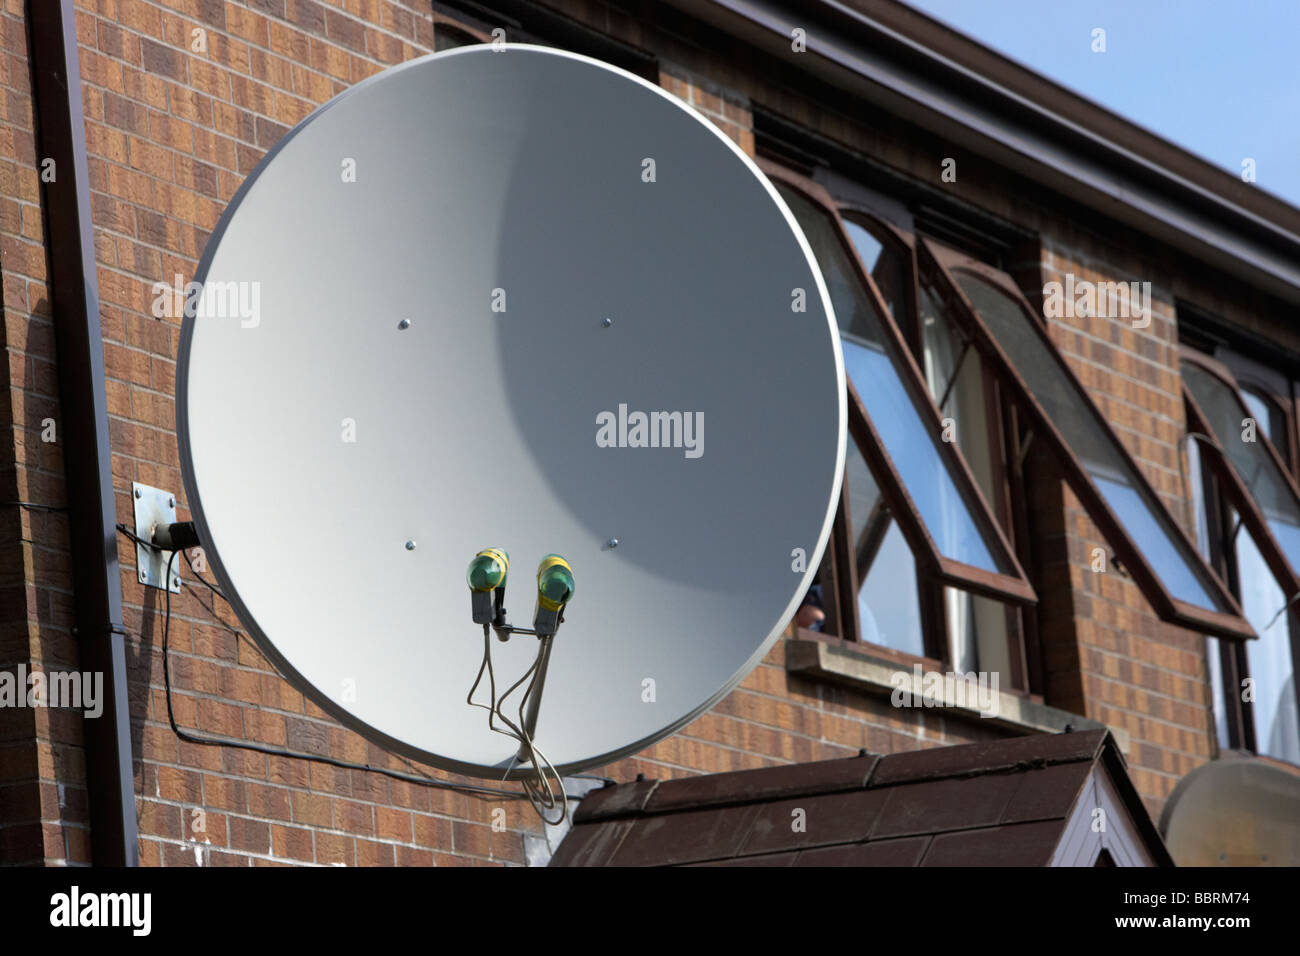 large satellite dish attached to the outside of a row of houses in the uk - Stock Image